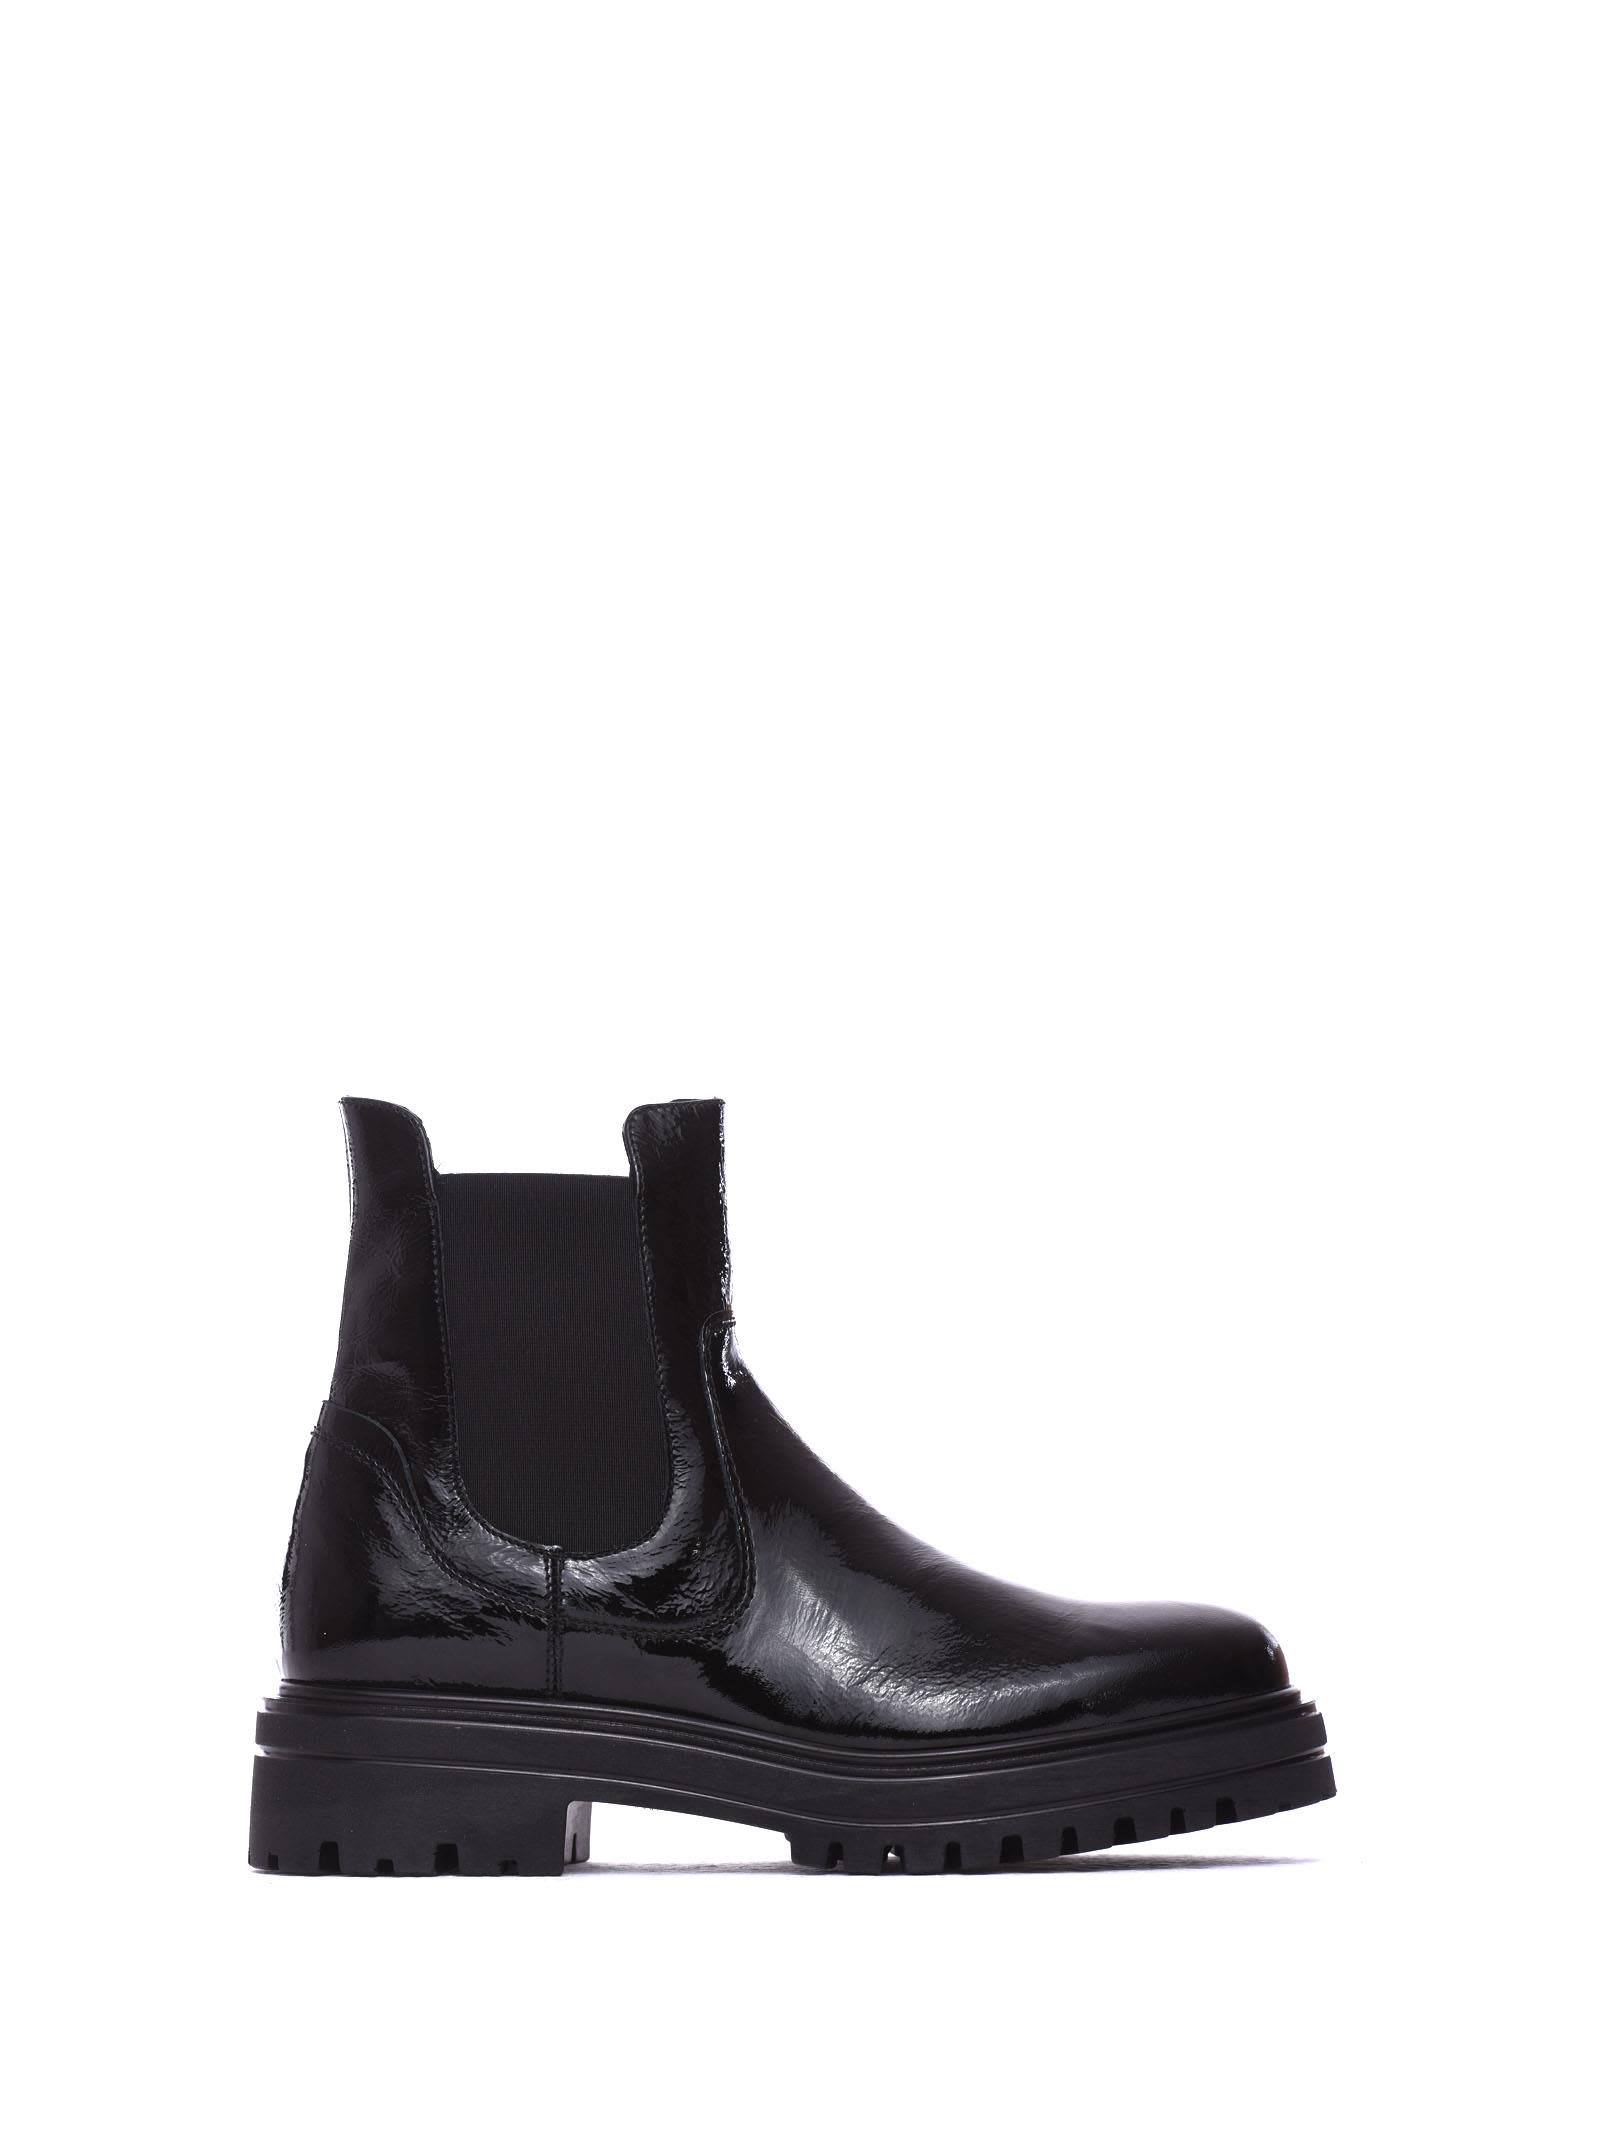 JANET&JANET Molly Glossy Black Ankle Boots in Nero